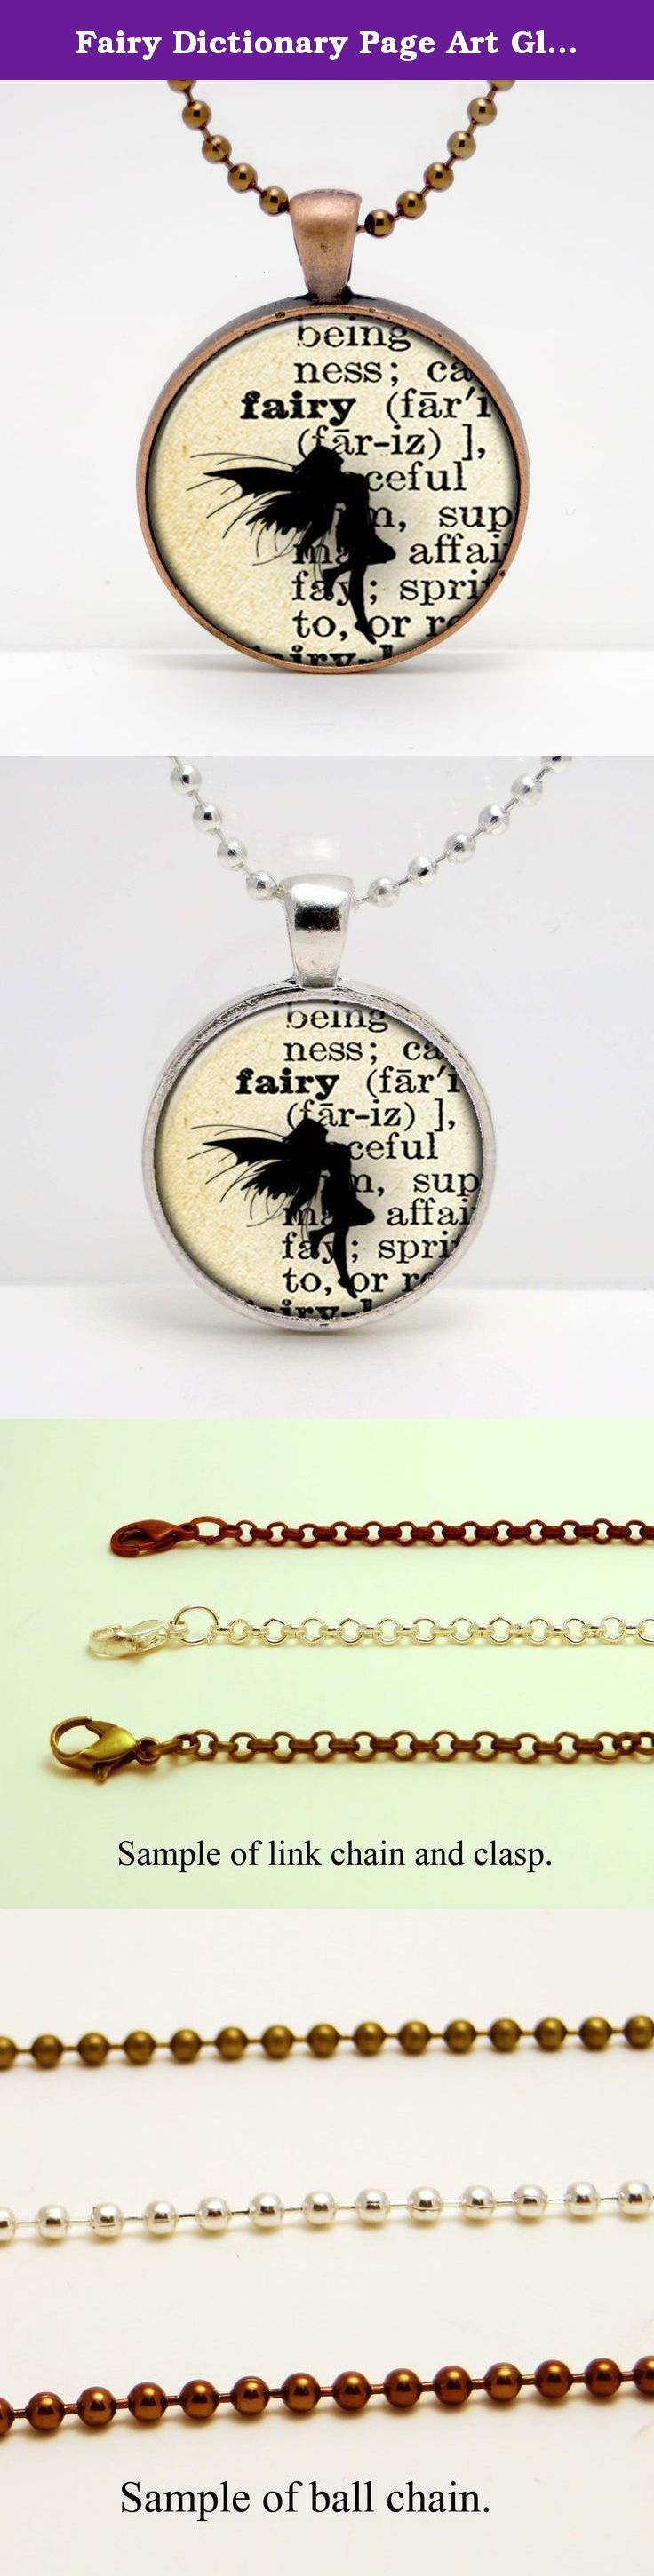 "Fairy Dictionary Page Art Glass Pendant or Key Chain- 30 mm round- Chain Included- Made to Order. This image is set in a 30 mm bezel and comes complete with a 24"" matching chain or matching key chain. Please choose from silver, copper, or bronze for the bezel and chain color. Please choose from a link chain, ball chain or key chain. This listing is for the glass art pendant and 24"" chain, or pendant and key chain. My glass art pendants are handcrafted using a high quality pendant bezel…"